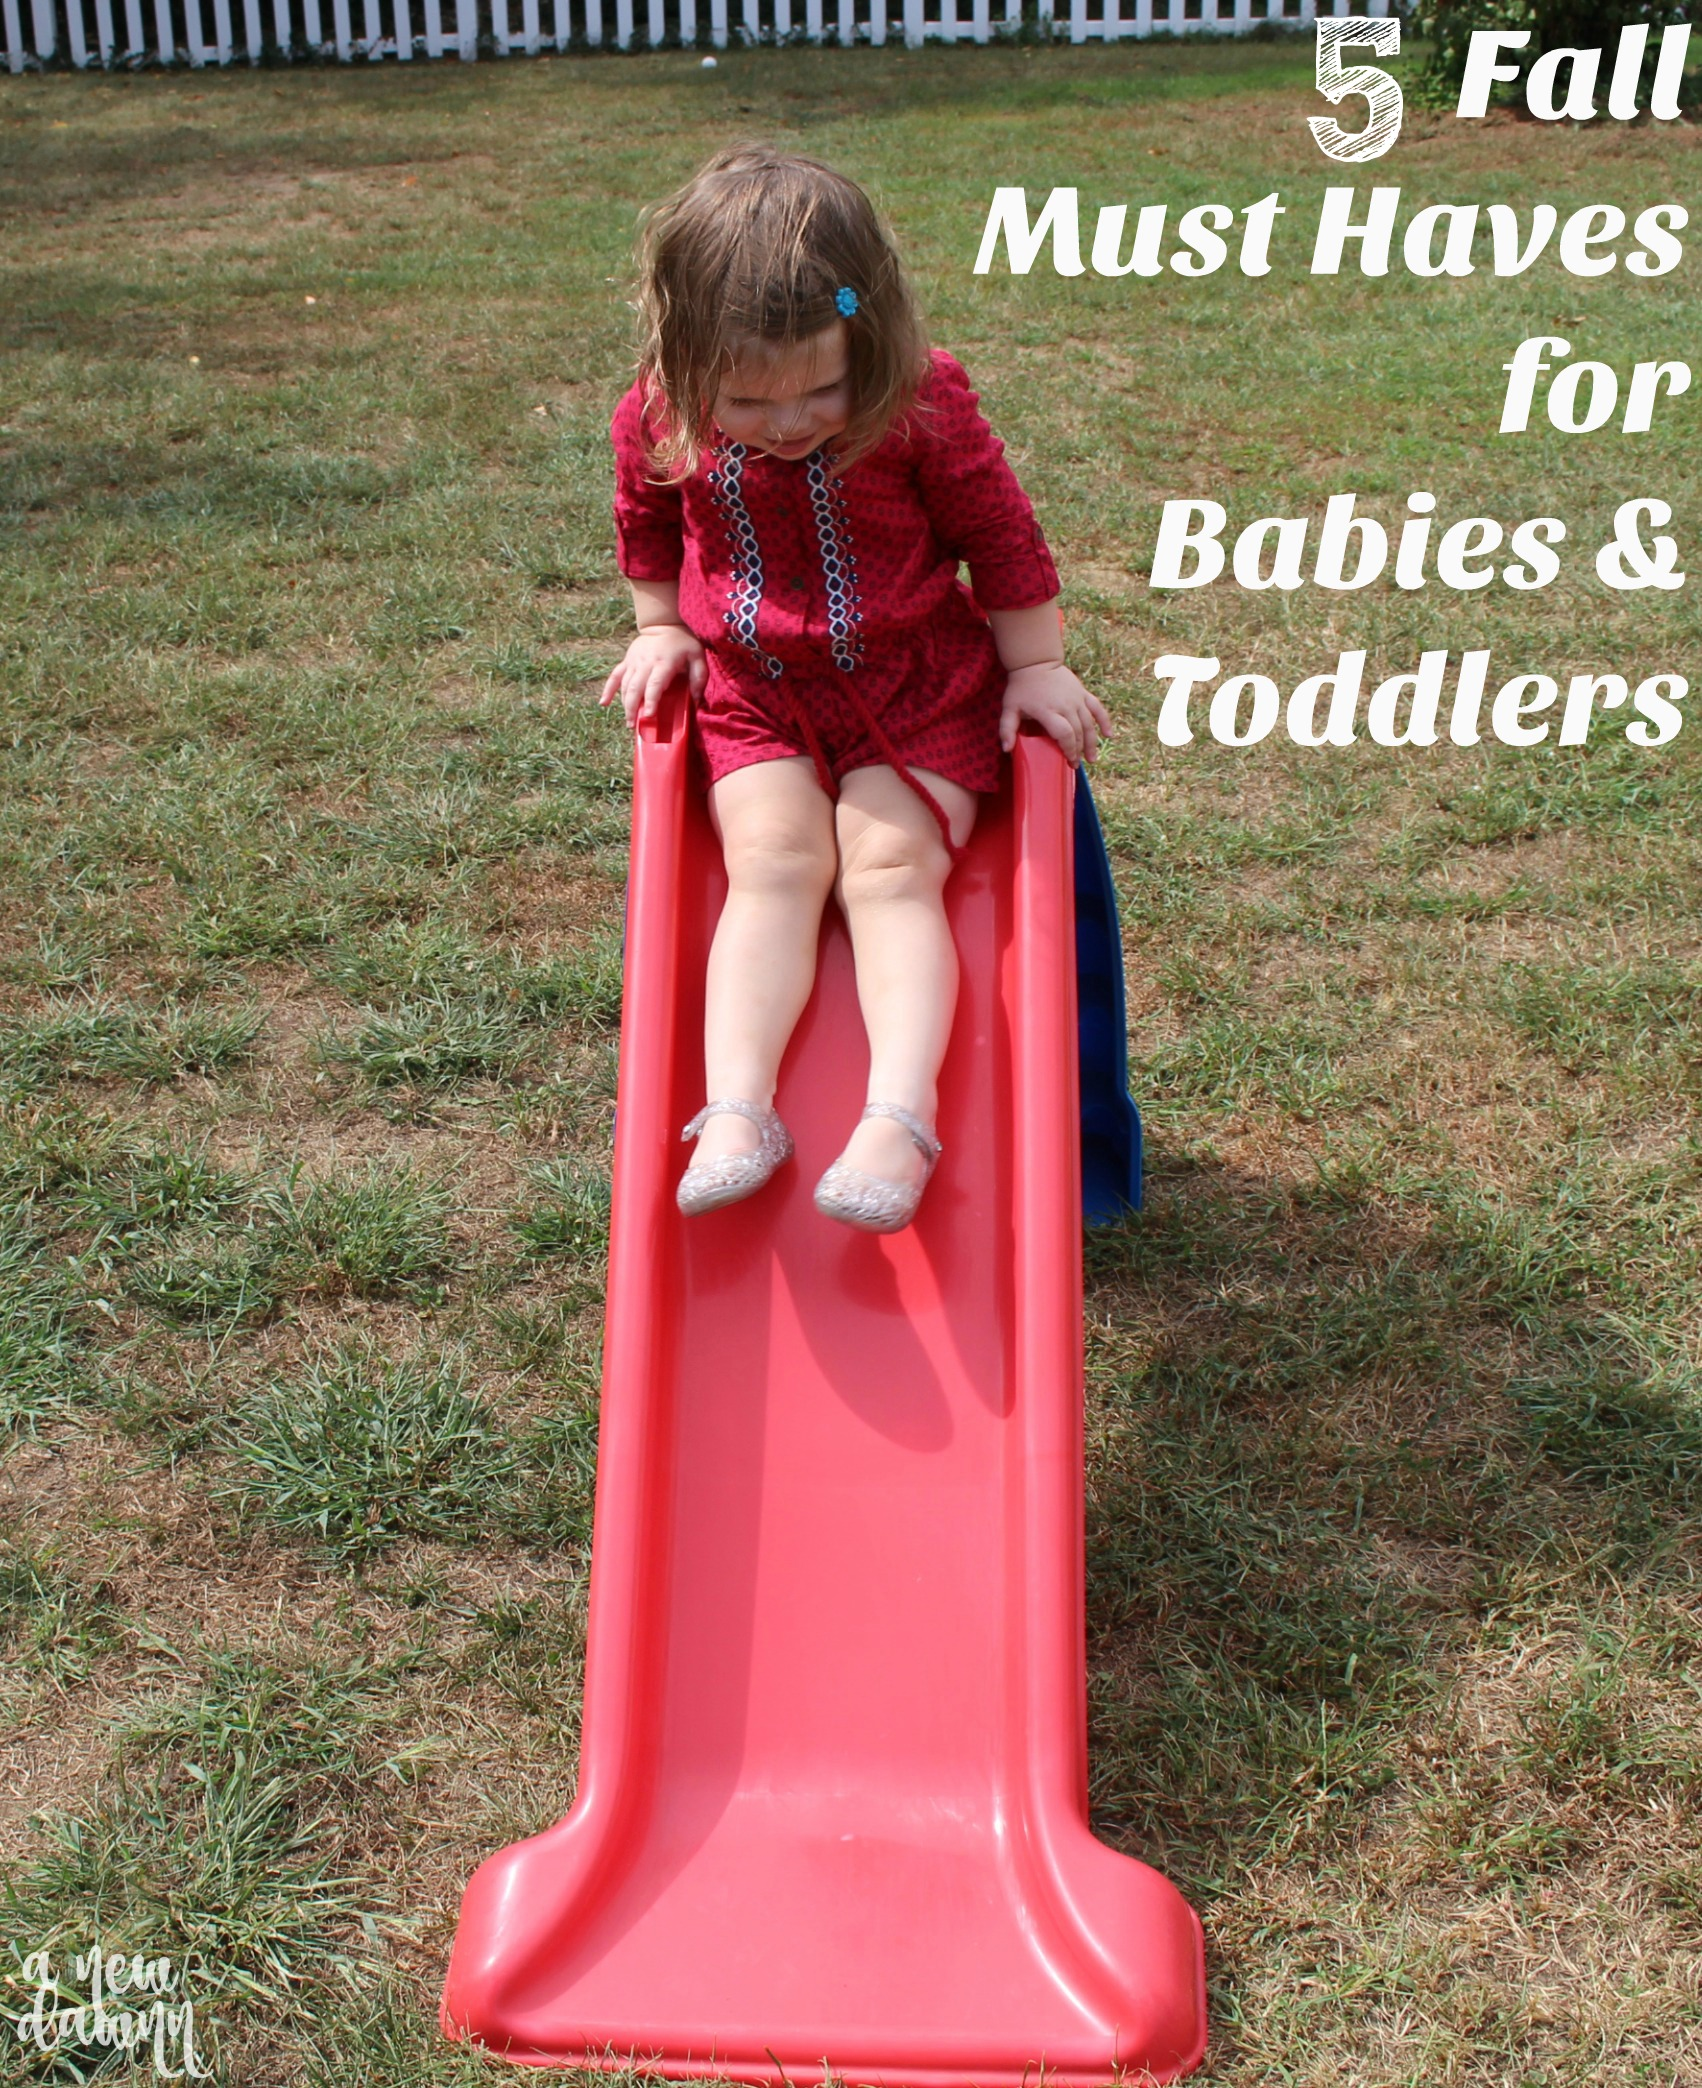 carters-fall-must-haves